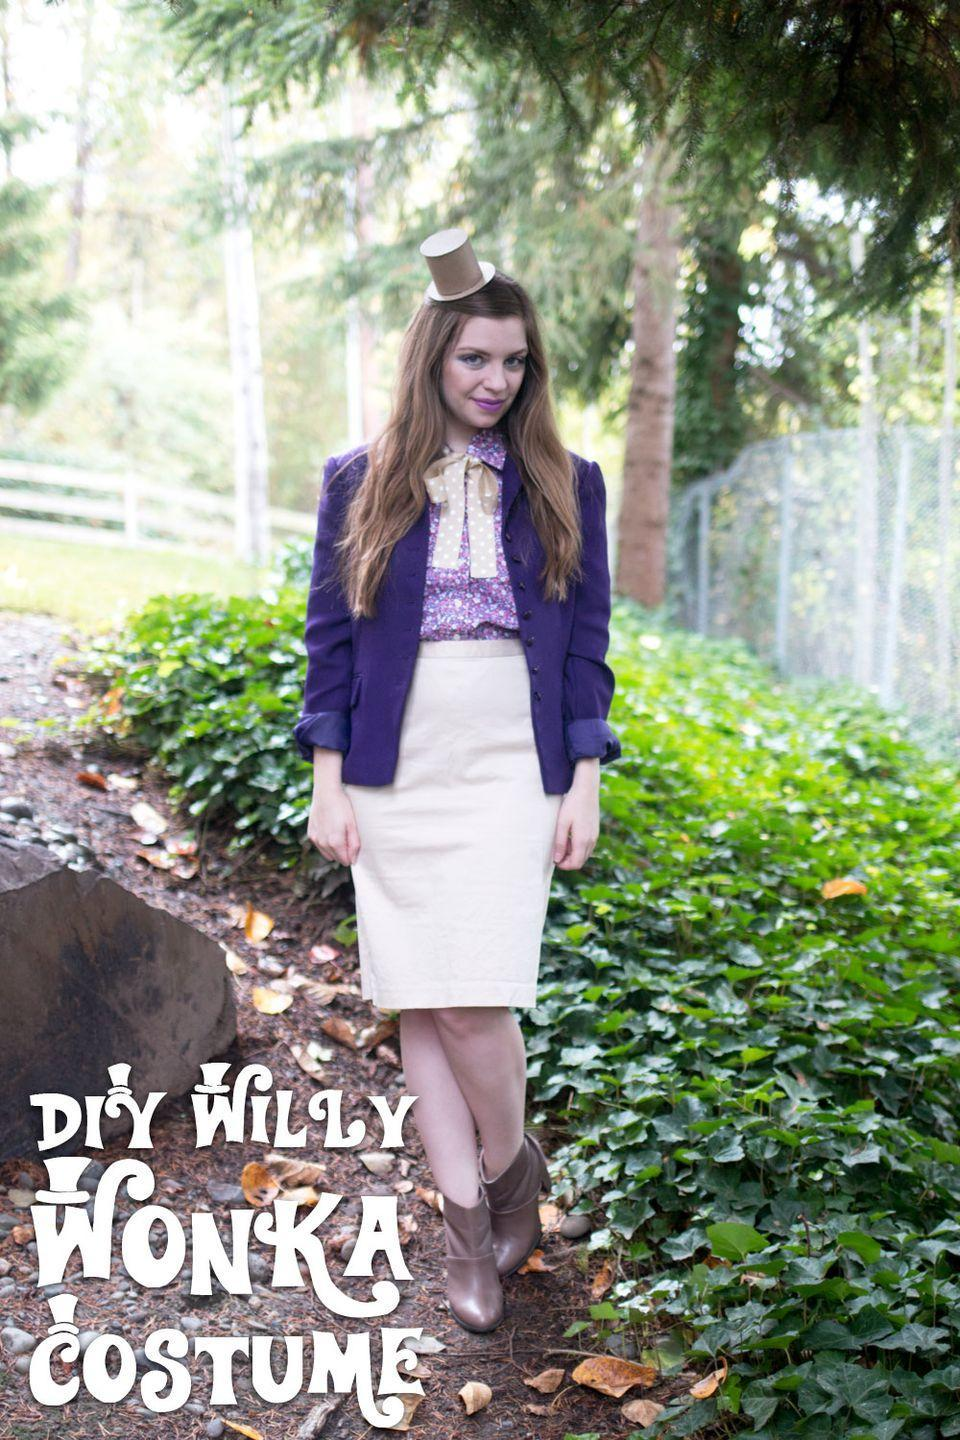 """<p>This polished Willy Wonka costume can be put together with items you likely already have in your closet. It can be worn from the office to a Halloween party, and everywhere in between. </p><p><strong>Get the tutorial at </strong><a href=""""http://www.hellorigby.com/diy-willy-wonka-costume/"""" rel=""""nofollow noopener"""" target=""""_blank"""" data-ylk=""""slk:Hello Rigby"""" class=""""link rapid-noclick-resp""""><strong>Hello Rigby</strong></a><strong>.</strong></p><p><a class=""""link rapid-noclick-resp"""" href=""""https://www.amazon.com/FASHIONOMIC-Womens-Weight-Cardigan-CLBC002/dp/B07L5JVFNZ/ref=sr_1_24?tag=syn-yahoo-20&ascsubtag=%5Bartid%7C10050.g.28698768%5Bsrc%7Cyahoo-us"""" rel=""""nofollow noopener"""" target=""""_blank"""" data-ylk=""""slk:SHOP PURPLE BLAZERS"""">SHOP PURPLE BLAZERS</a></p>"""